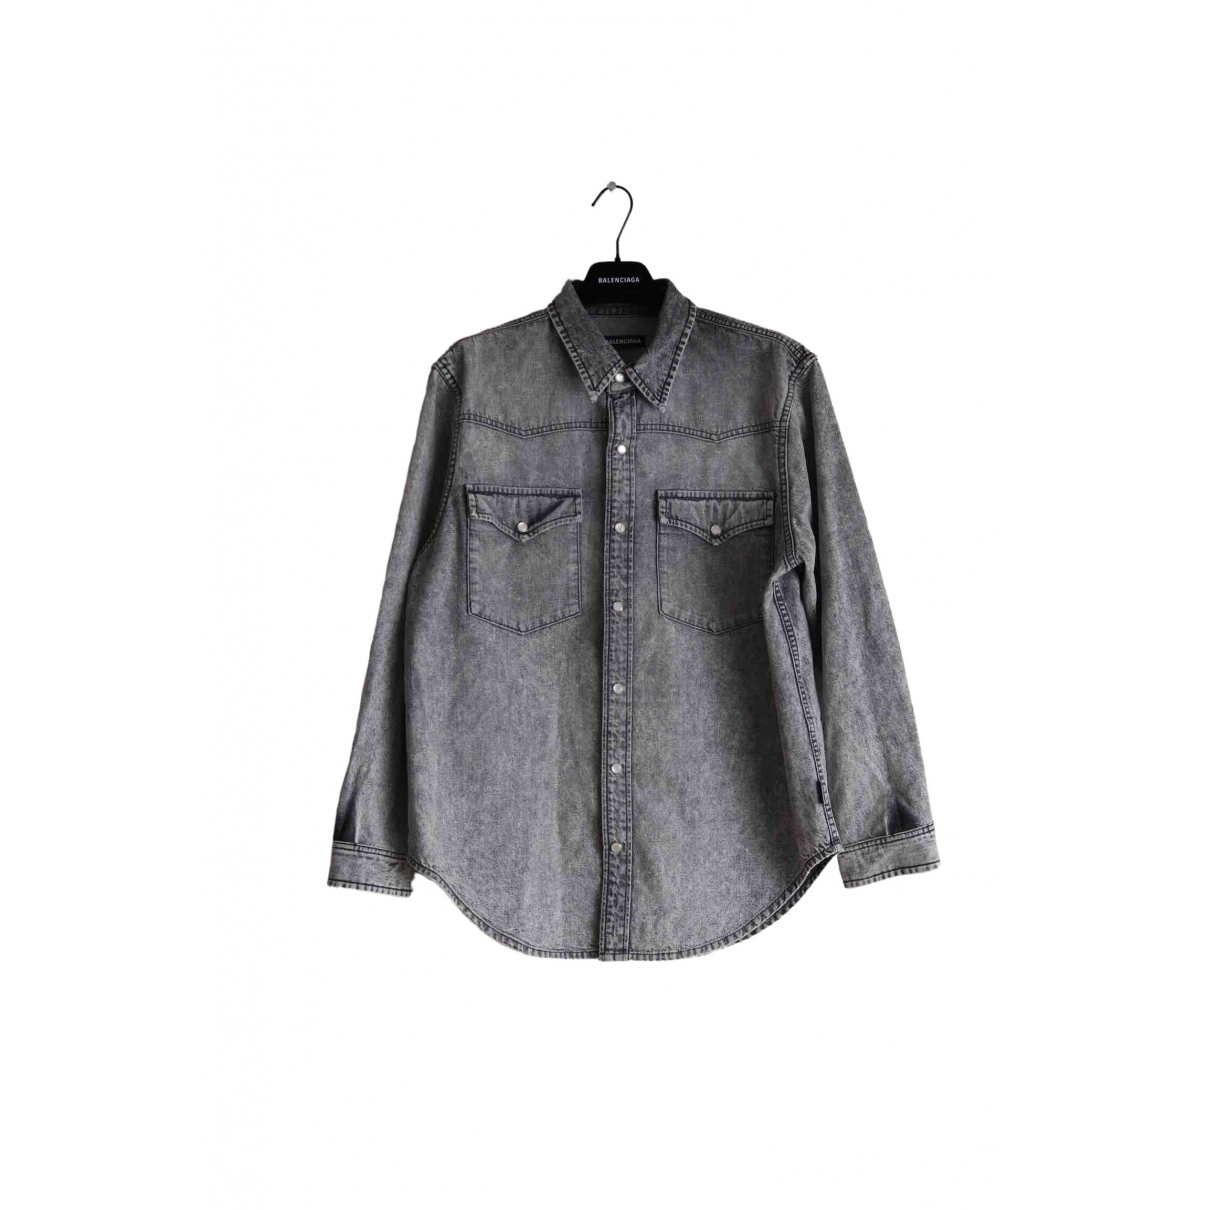 Balenciaga \N Grey Denim - Jeans Shirts for Men 38 EU (tour de cou / collar)